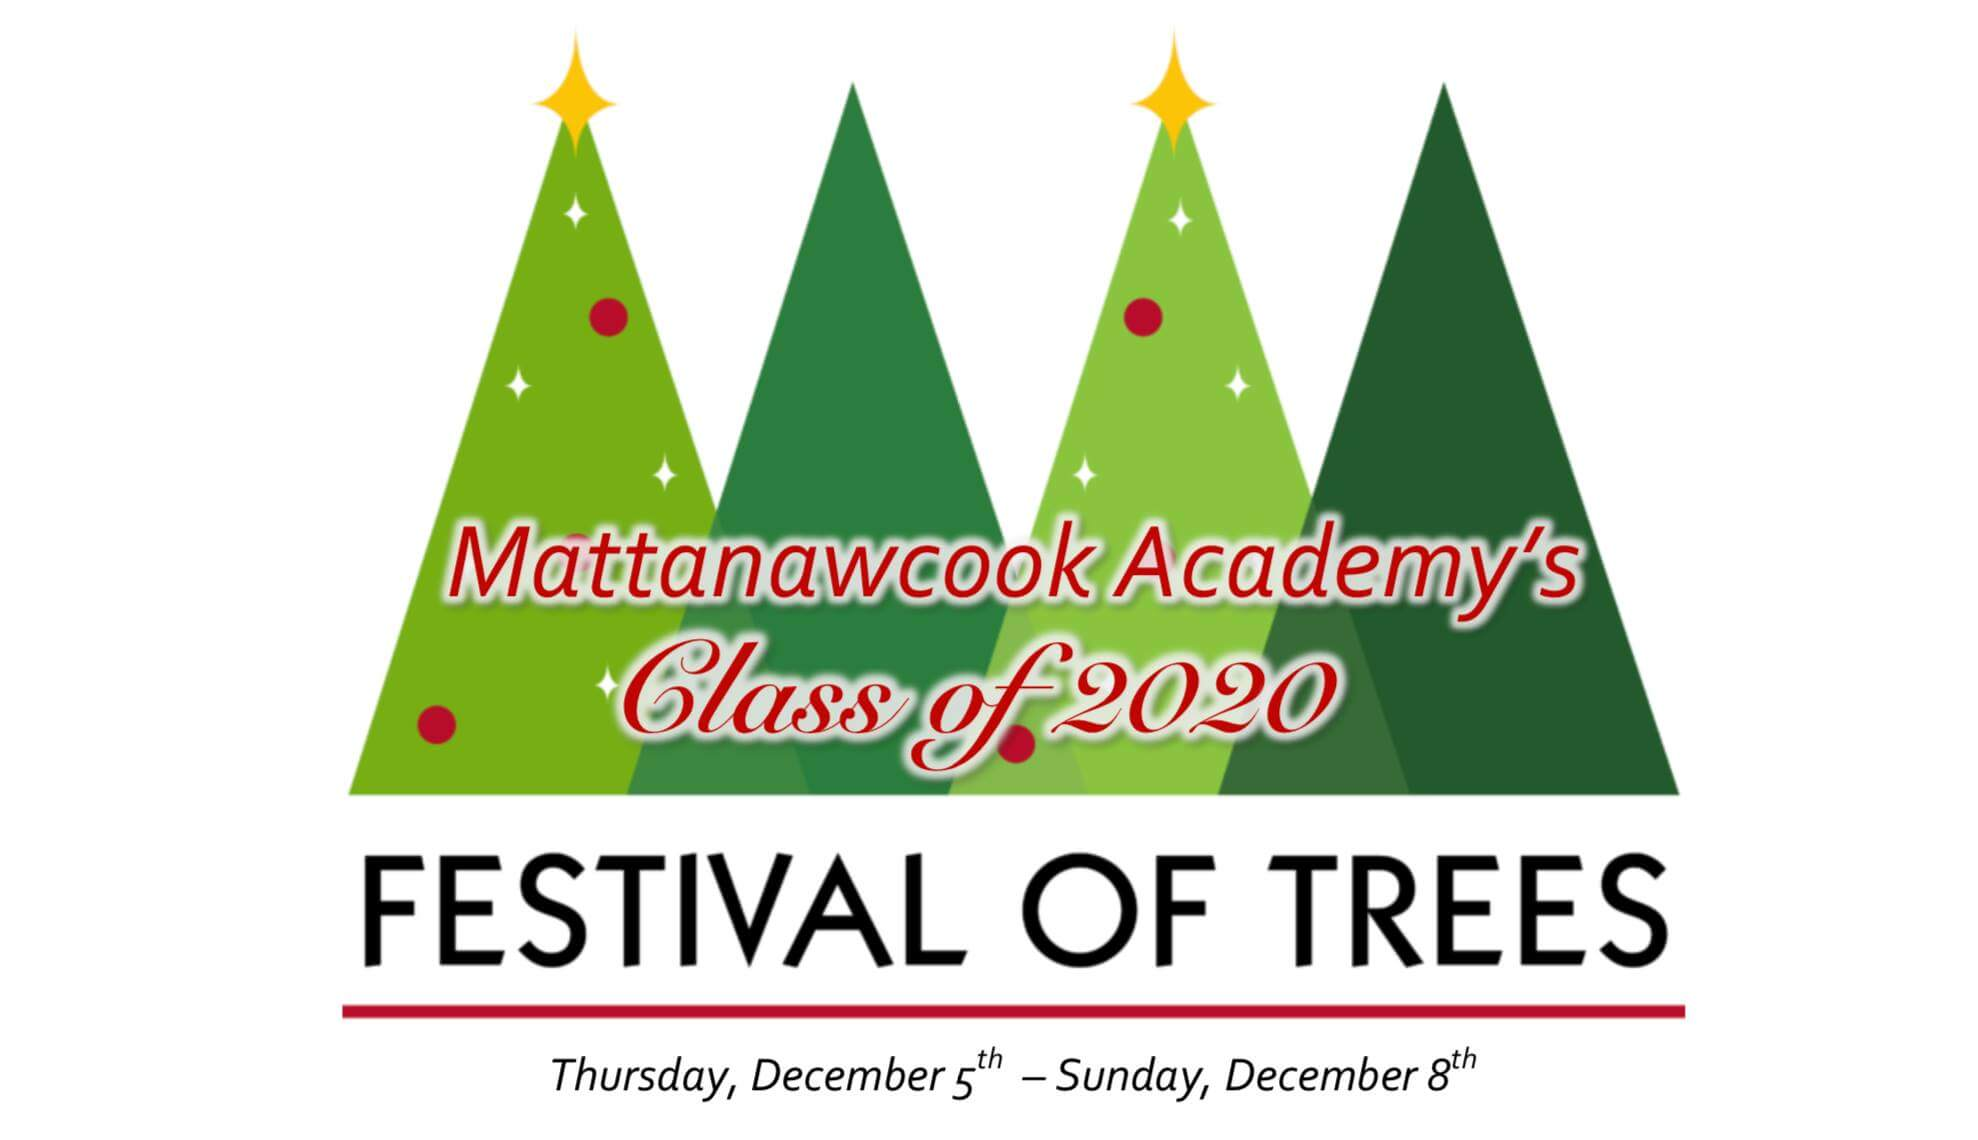 Festival Of Trees 2020.Festival Of Trees Mattanawcook Academy Class Of 2020